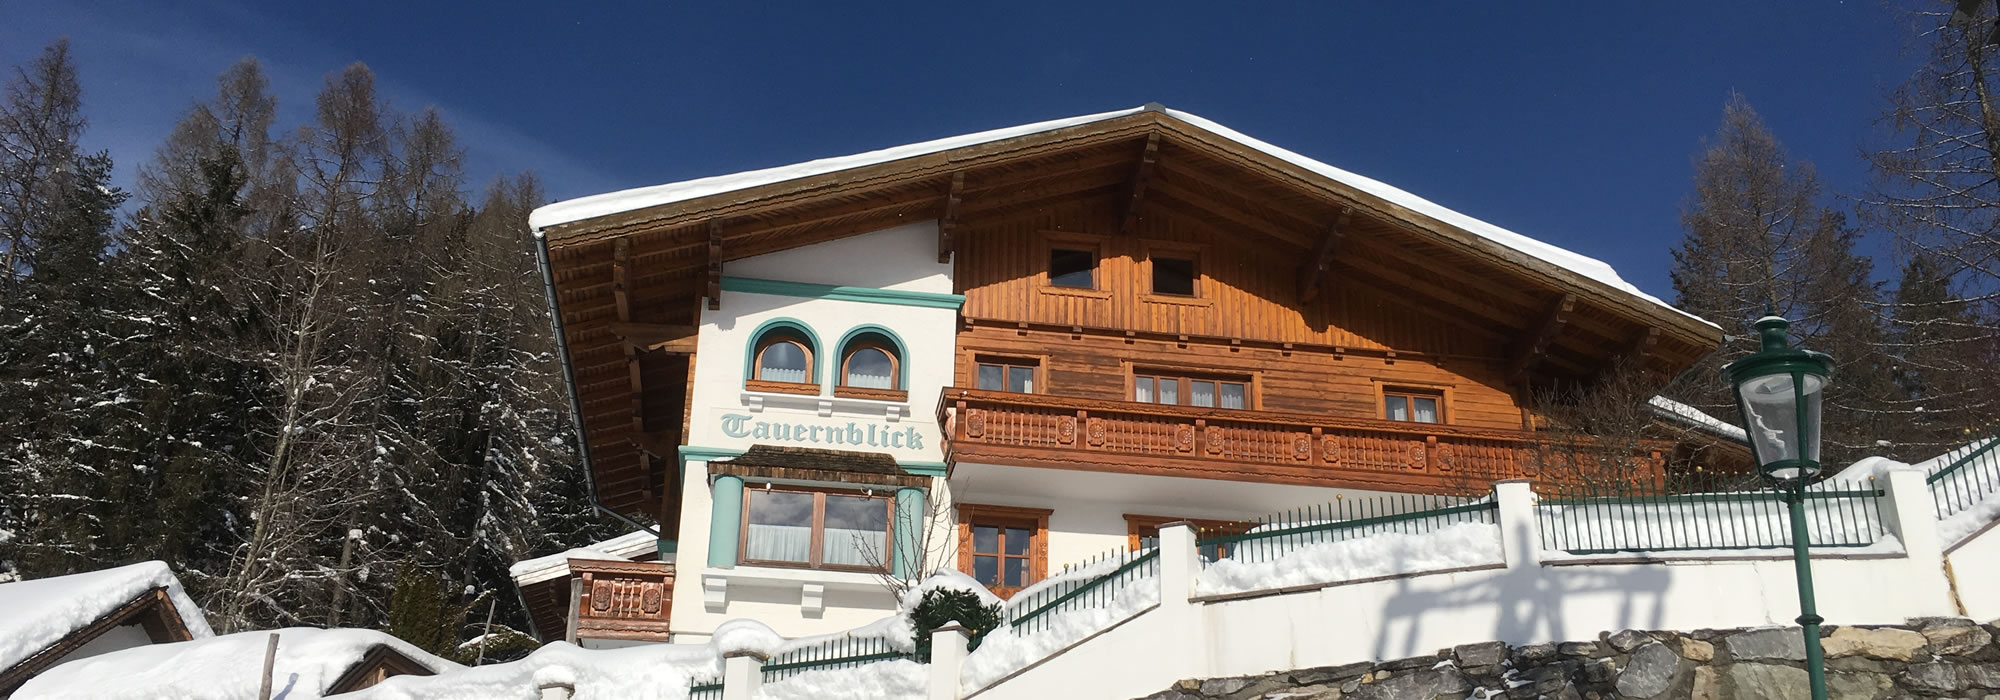 Winterurlaub in Forstau, Appartements Tauernblick